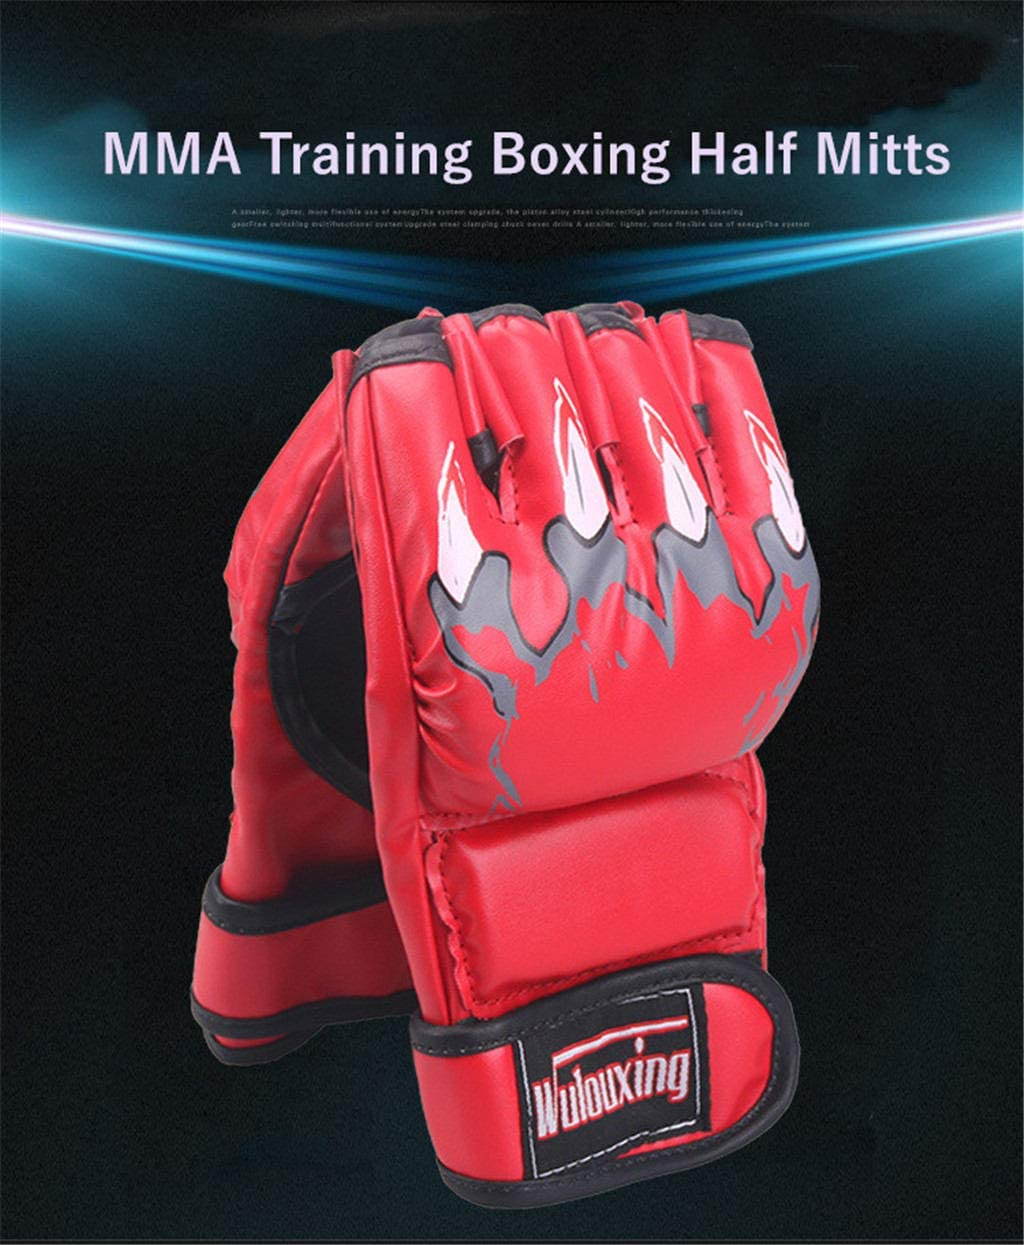 BriaPa MMA Punching Gloves with Adjustable Wrist Band Half Mitts Kickboxing Sparring Grappling Martial Arts Muay Thai Taekwondo Wrist Wraps Beast Paw